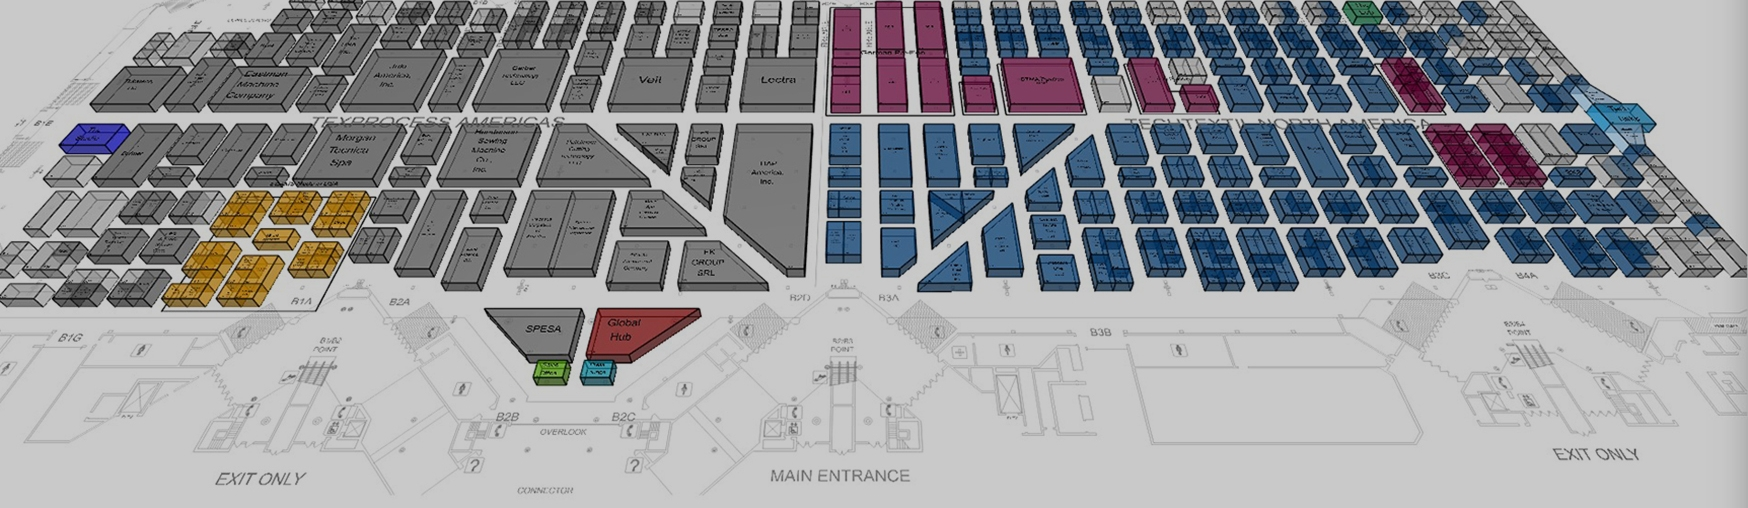 Explore the Floor Plan